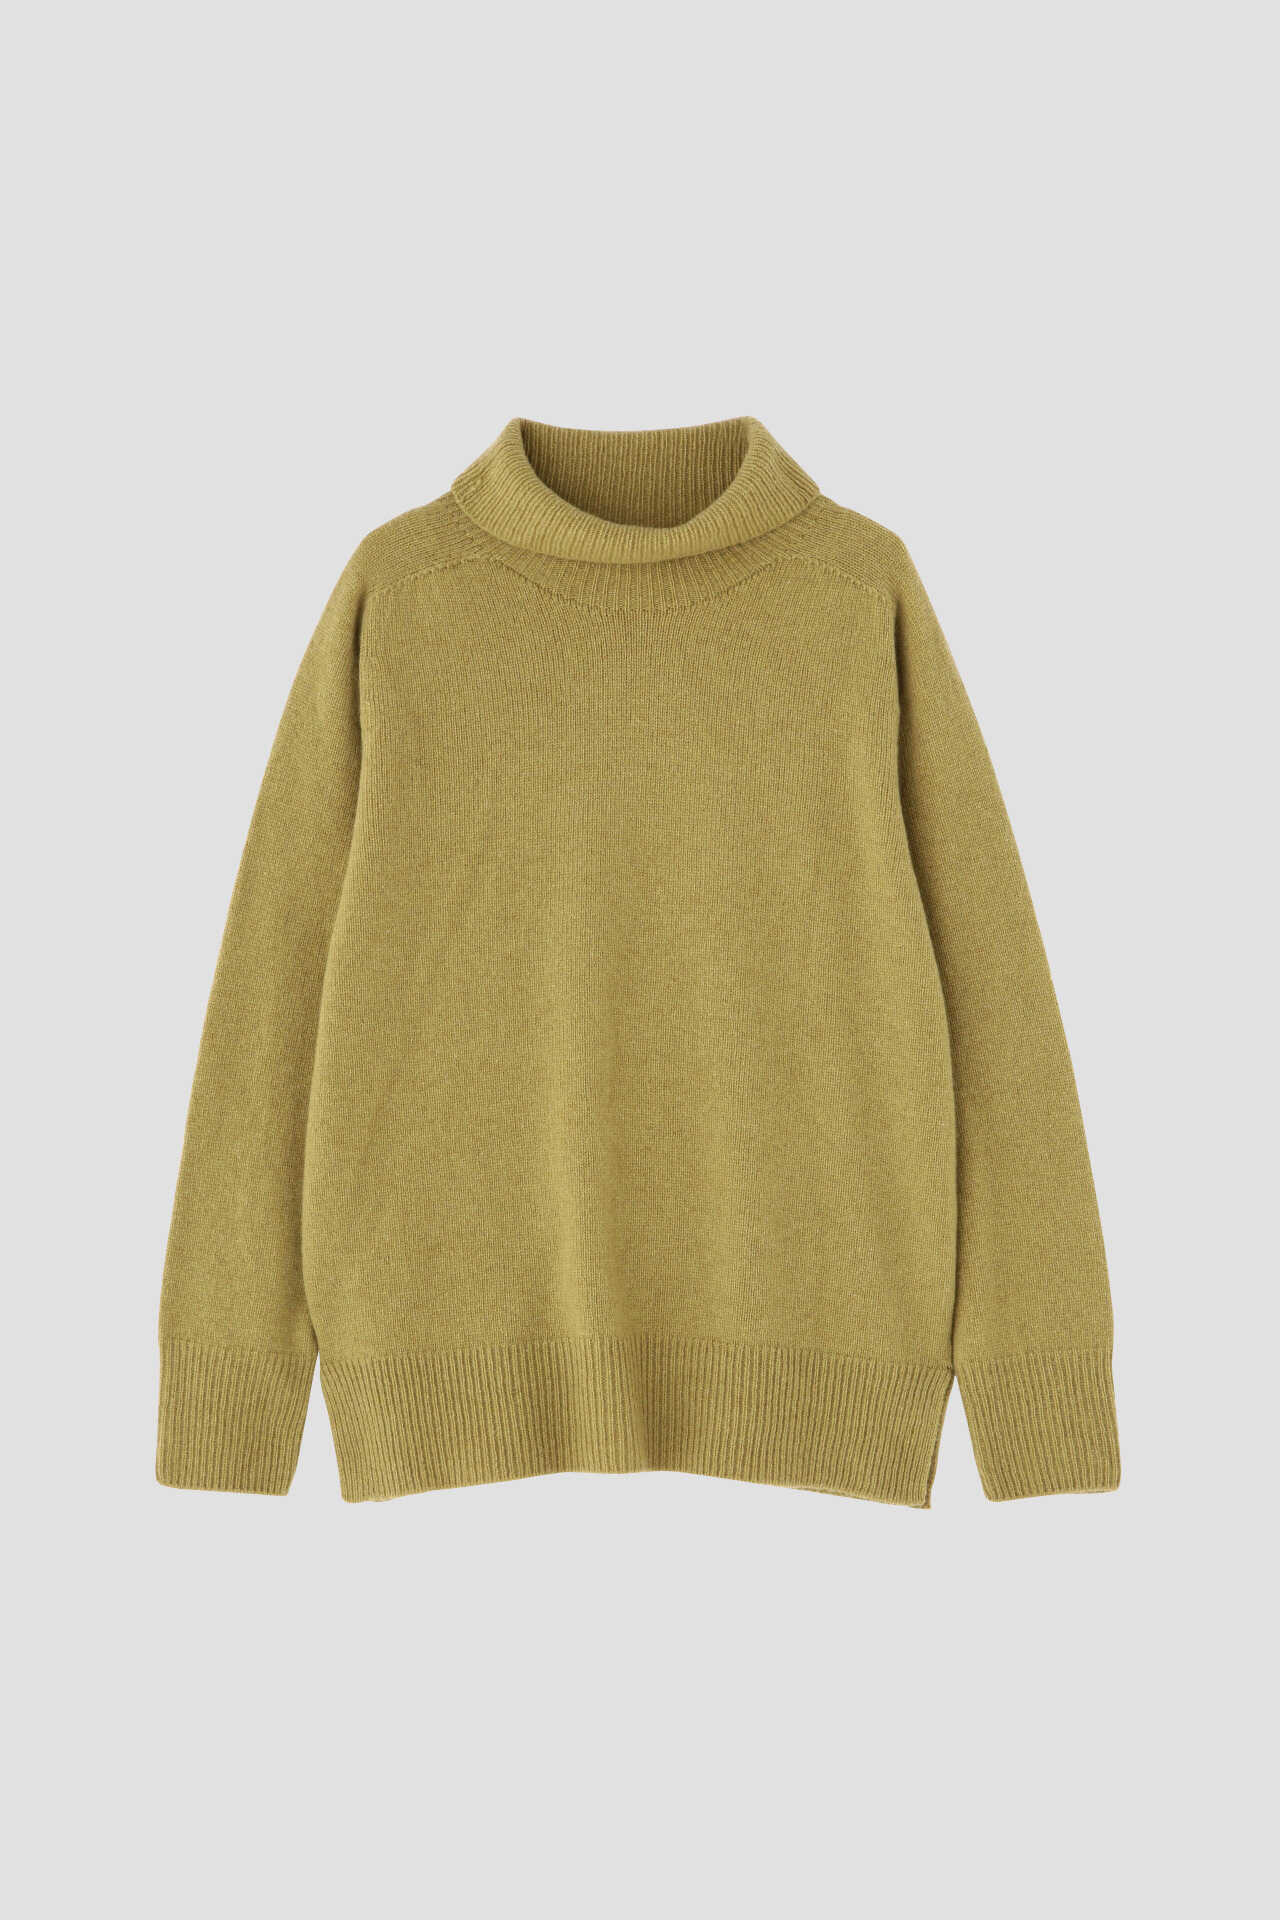 WOOL CASHMERE15